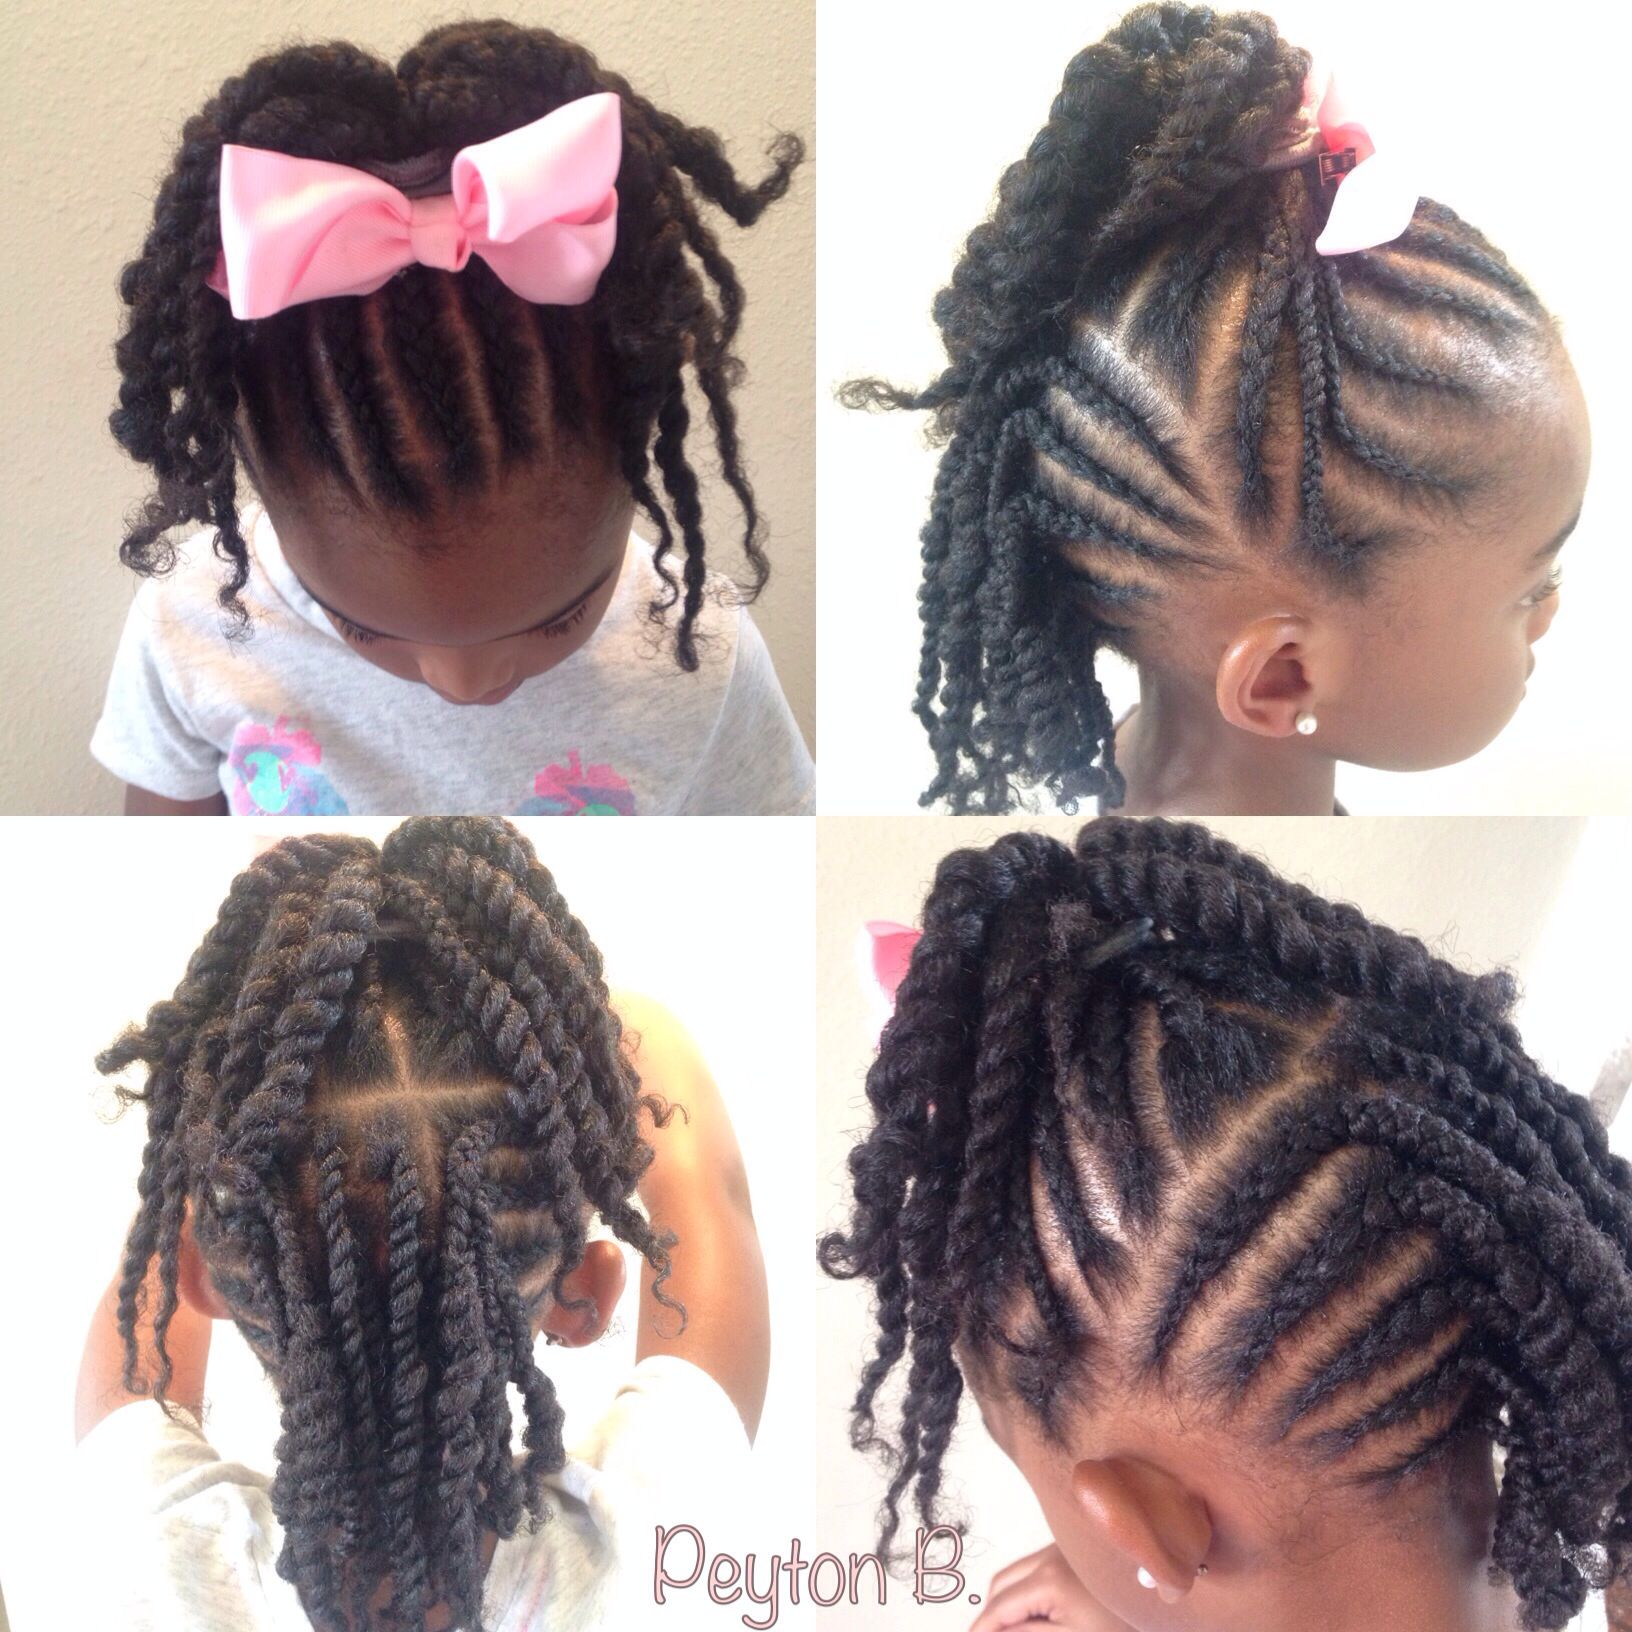 Top Cornrows With Ends Twisted Up Into Ponytail Back Cornrows Two Strand Twists Natural Hairstyles For Kids Natural Hair Natural Hair Styles Hair Braided Hairstyles